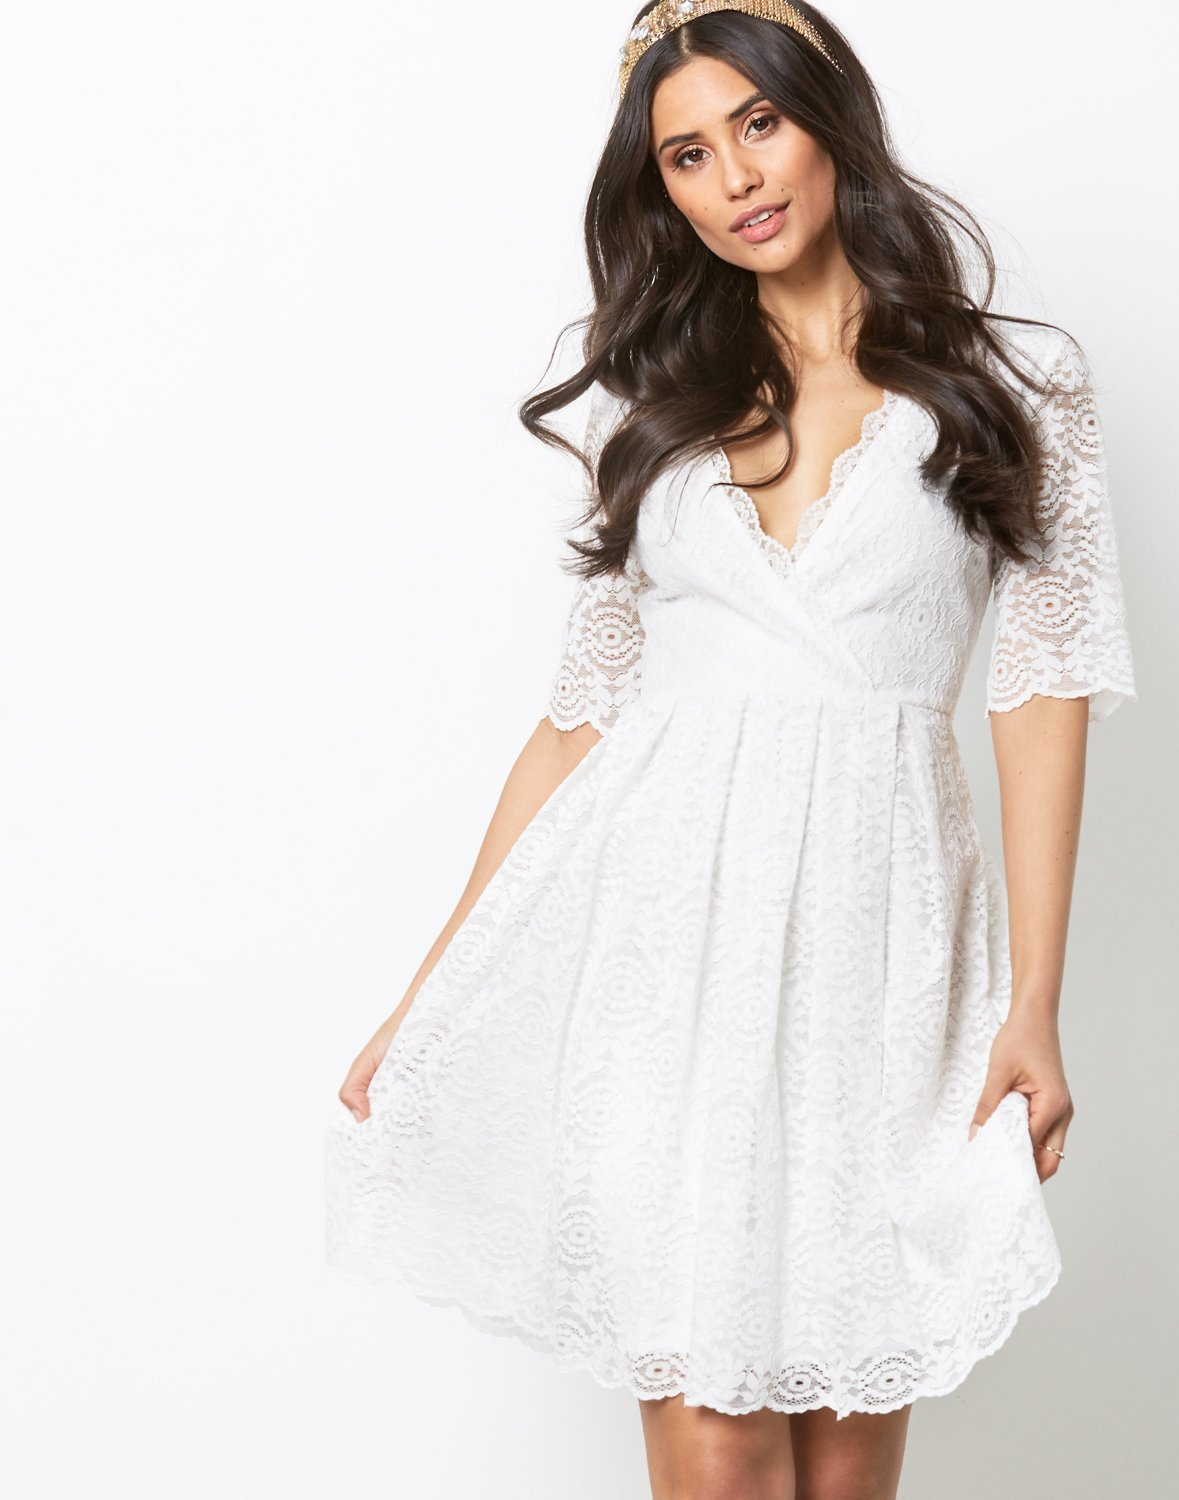 Short Sleeve Lace Dress by Nly One